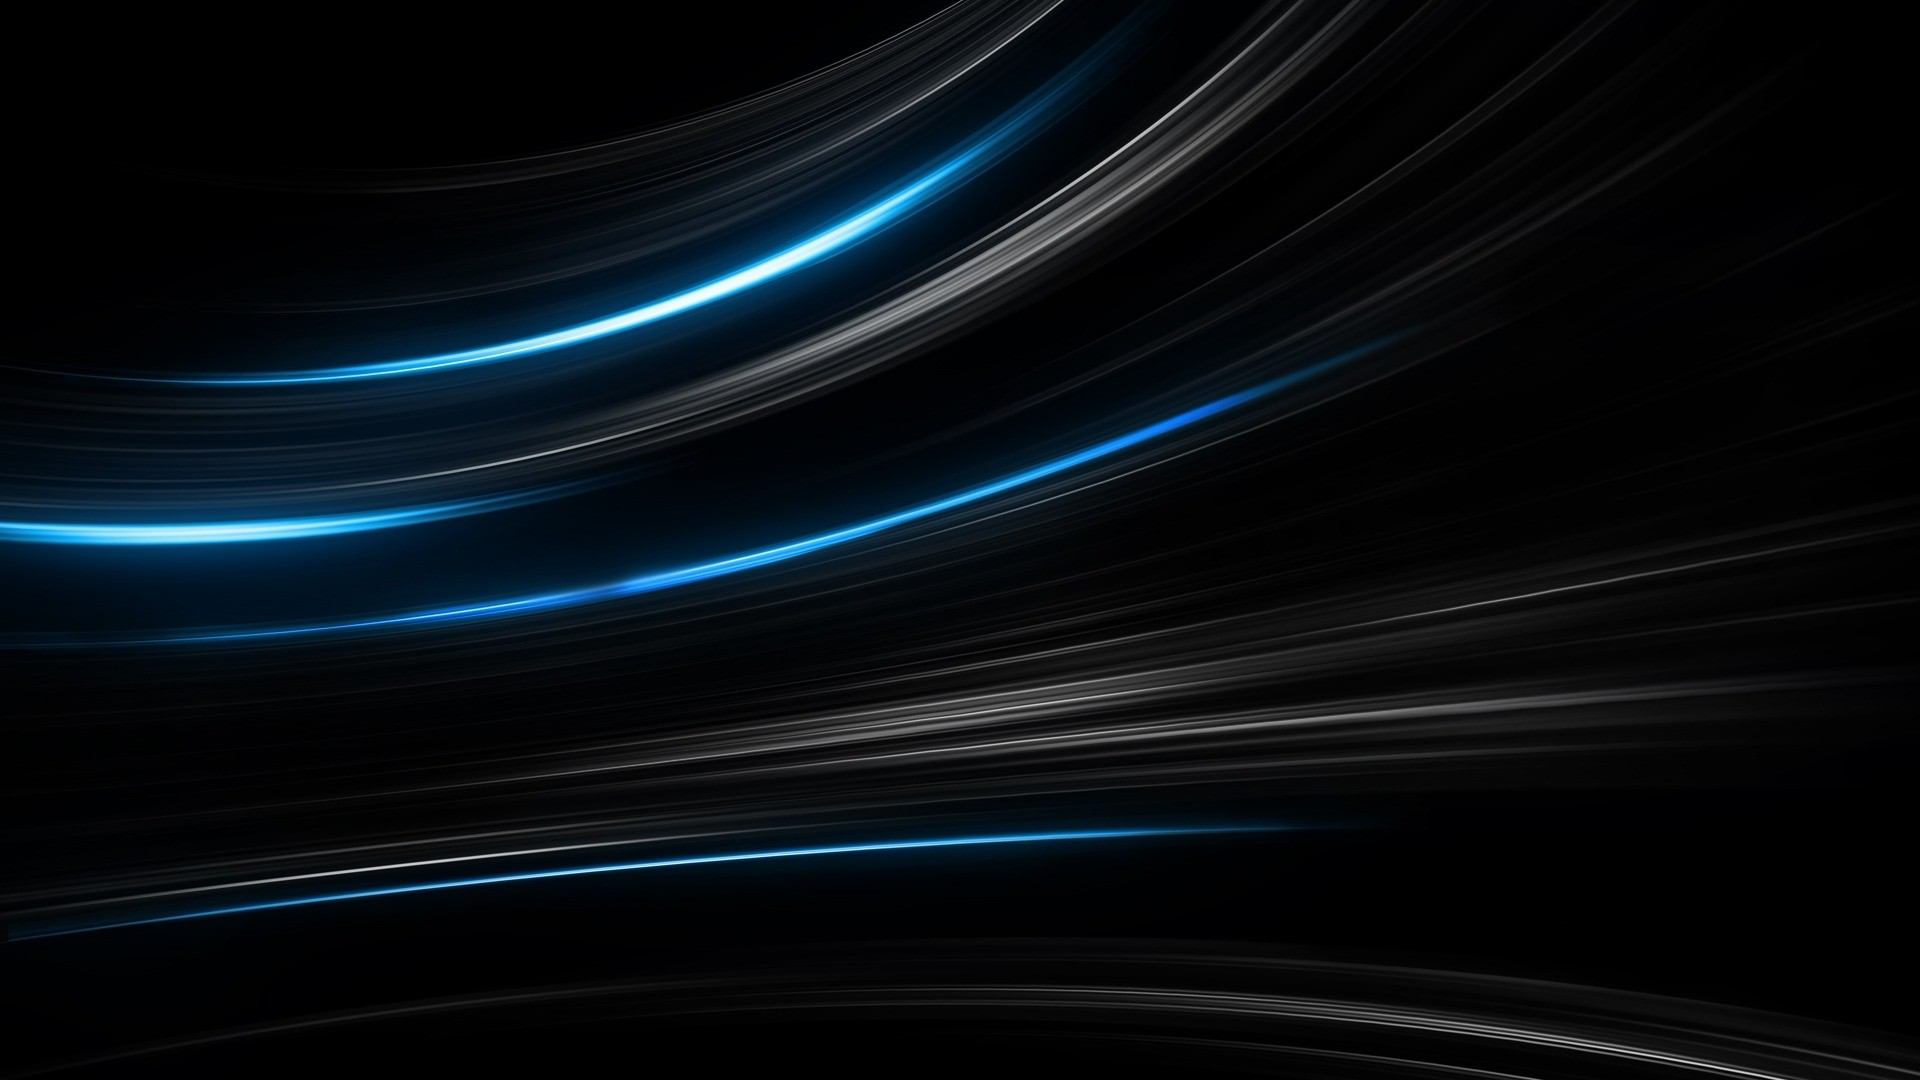 Black, Blue, Abstract, Stripes Wallpaper, Background Full HD 1080p .